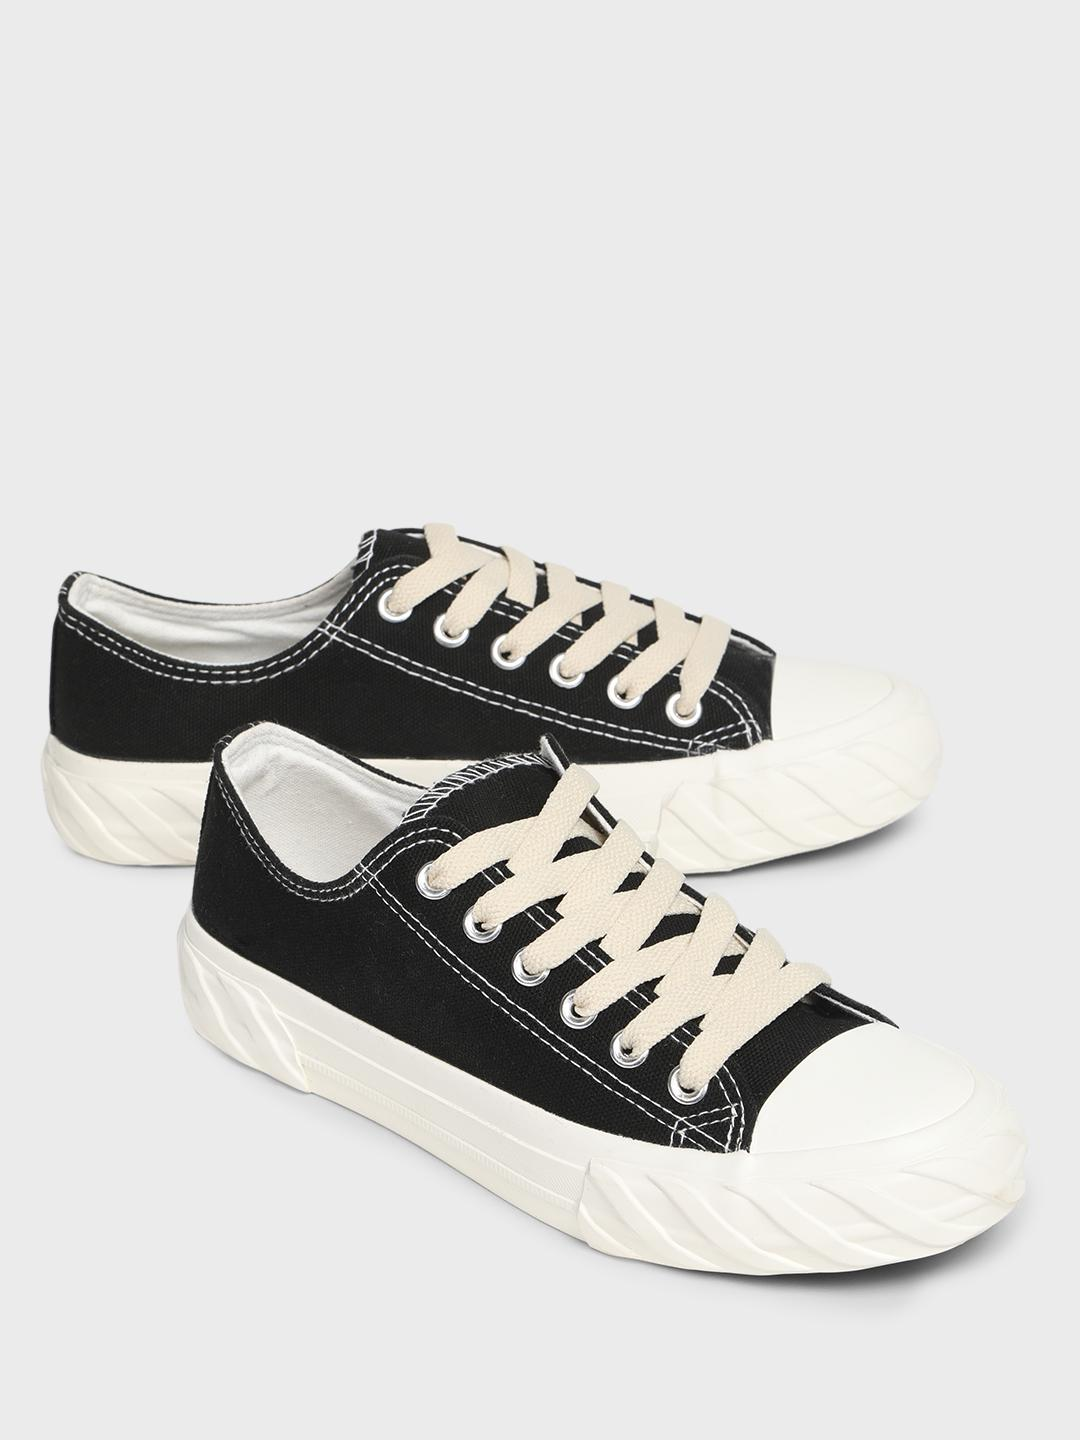 Sole Story Black Canvas Lace-Up Flatform Sneakers 1